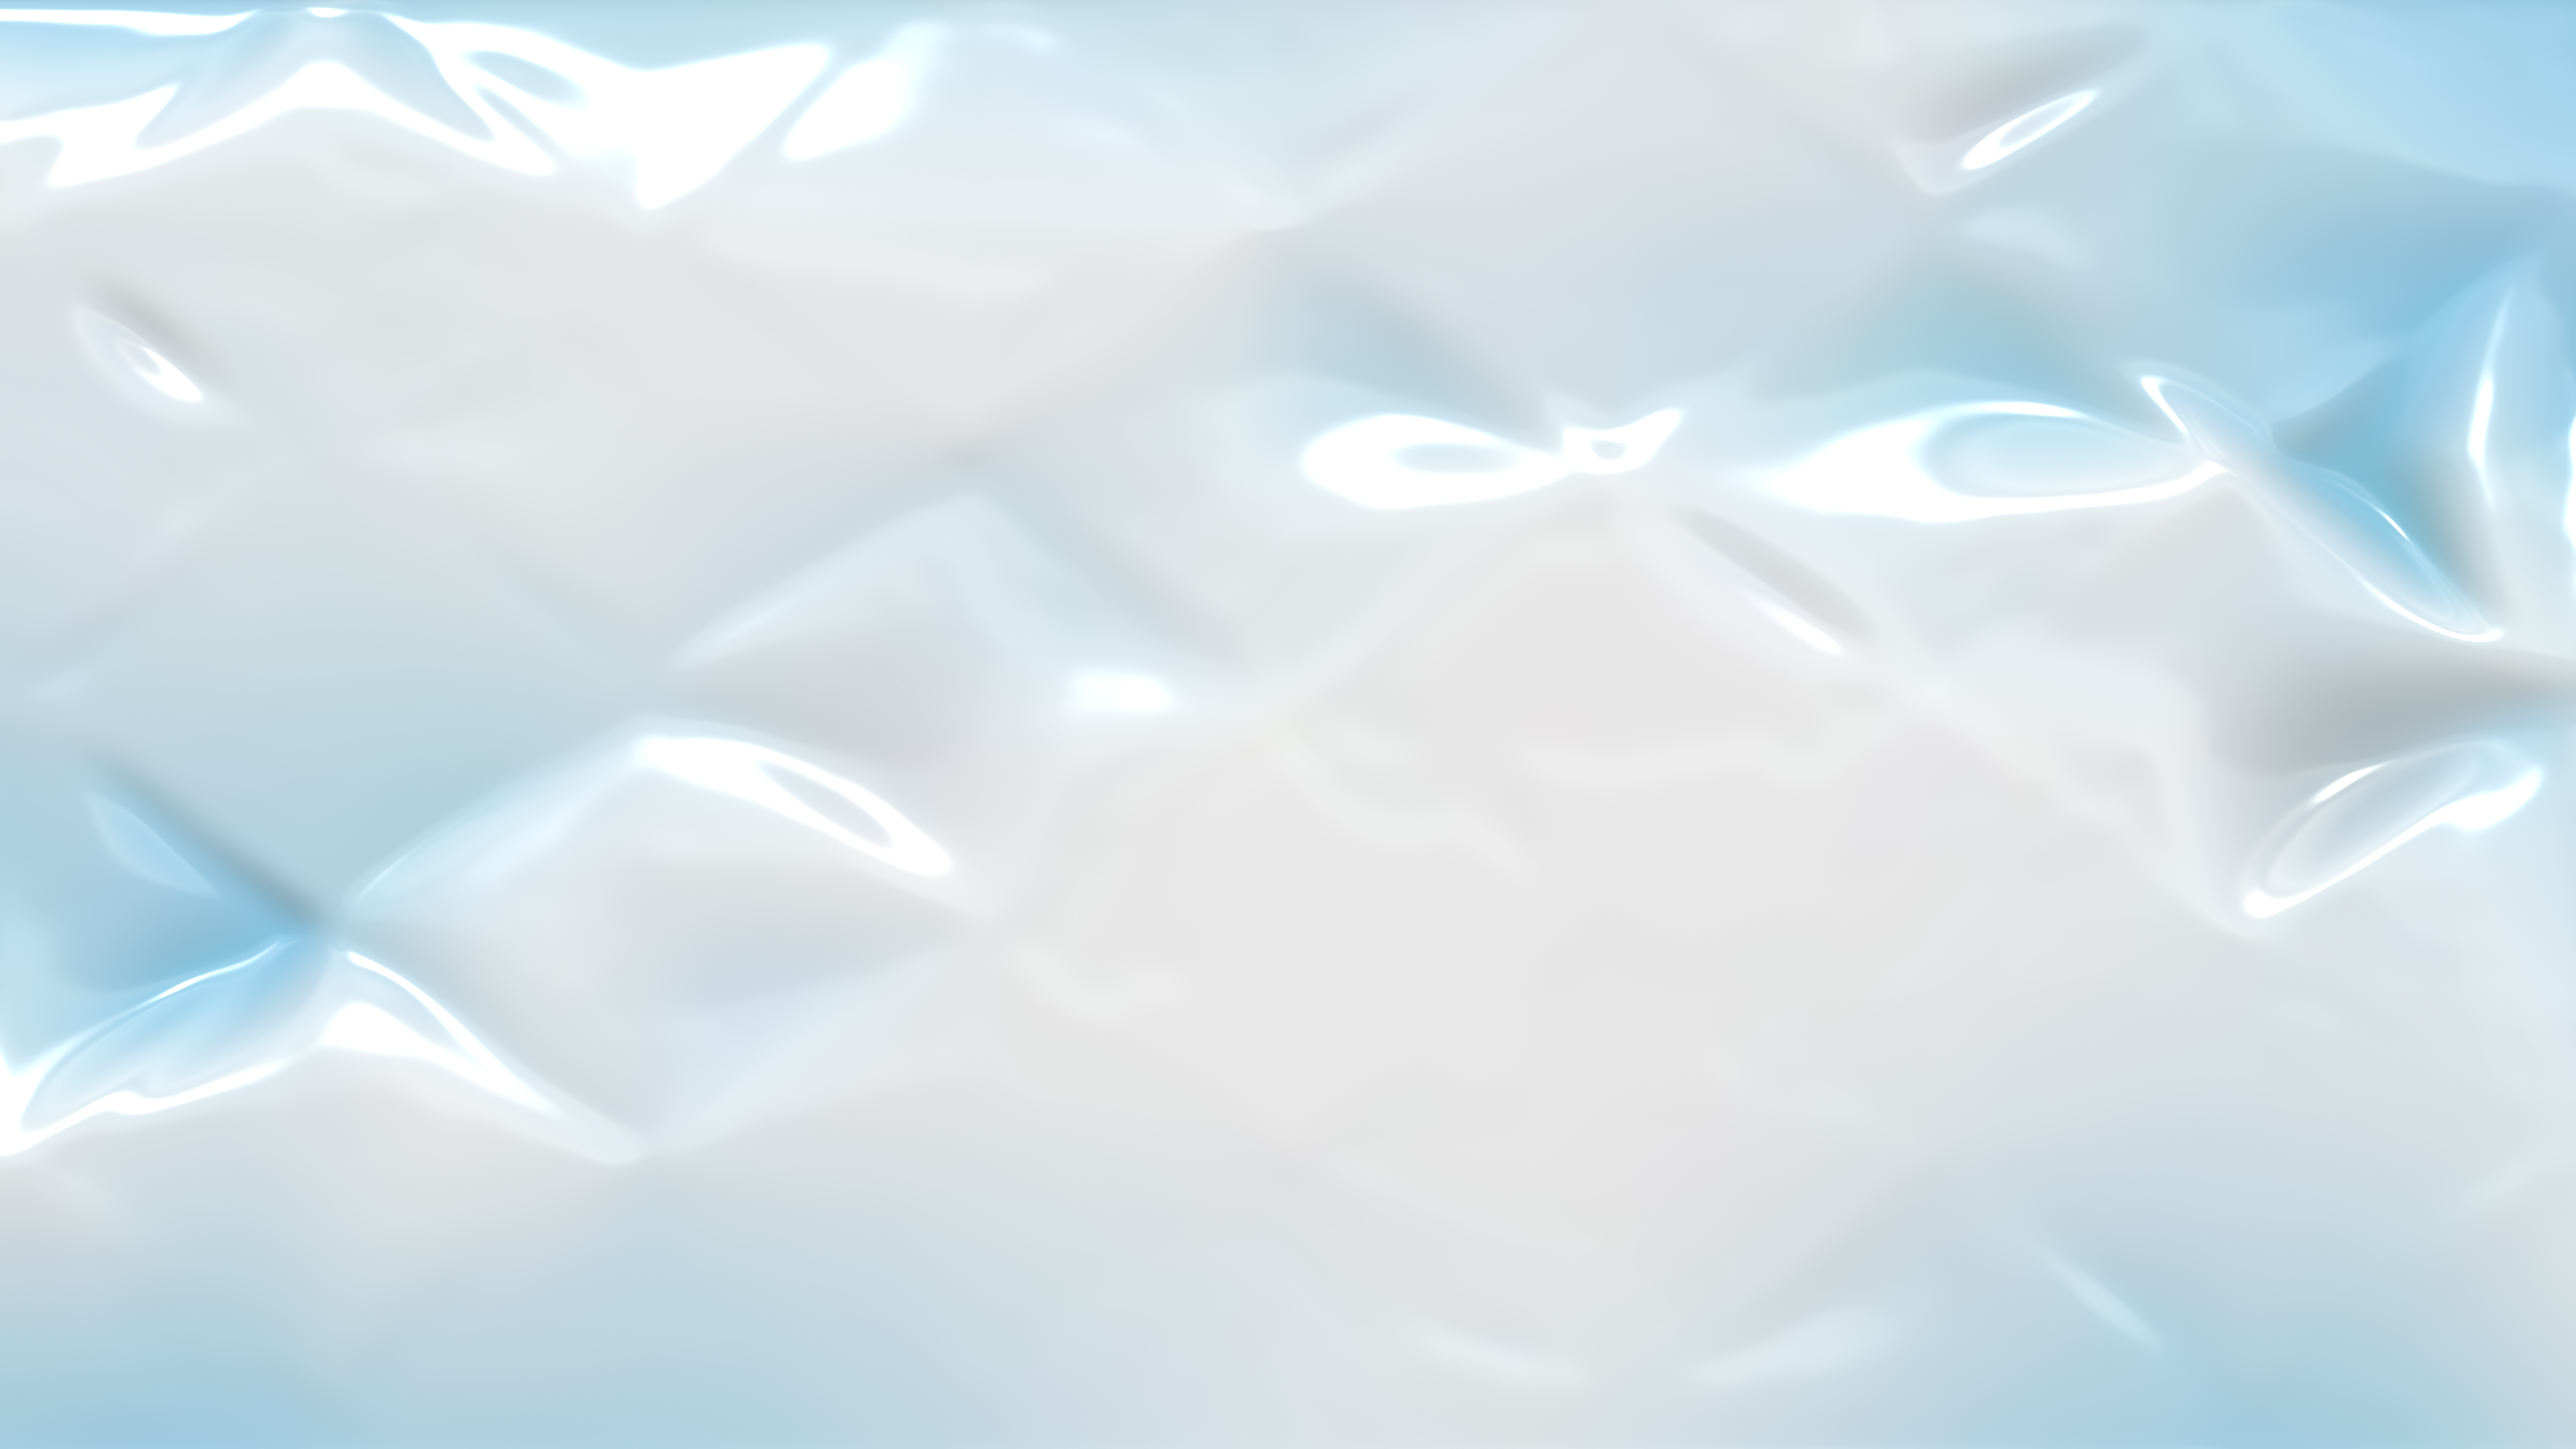 Blue and White Wrinkled Plastic Texture Background